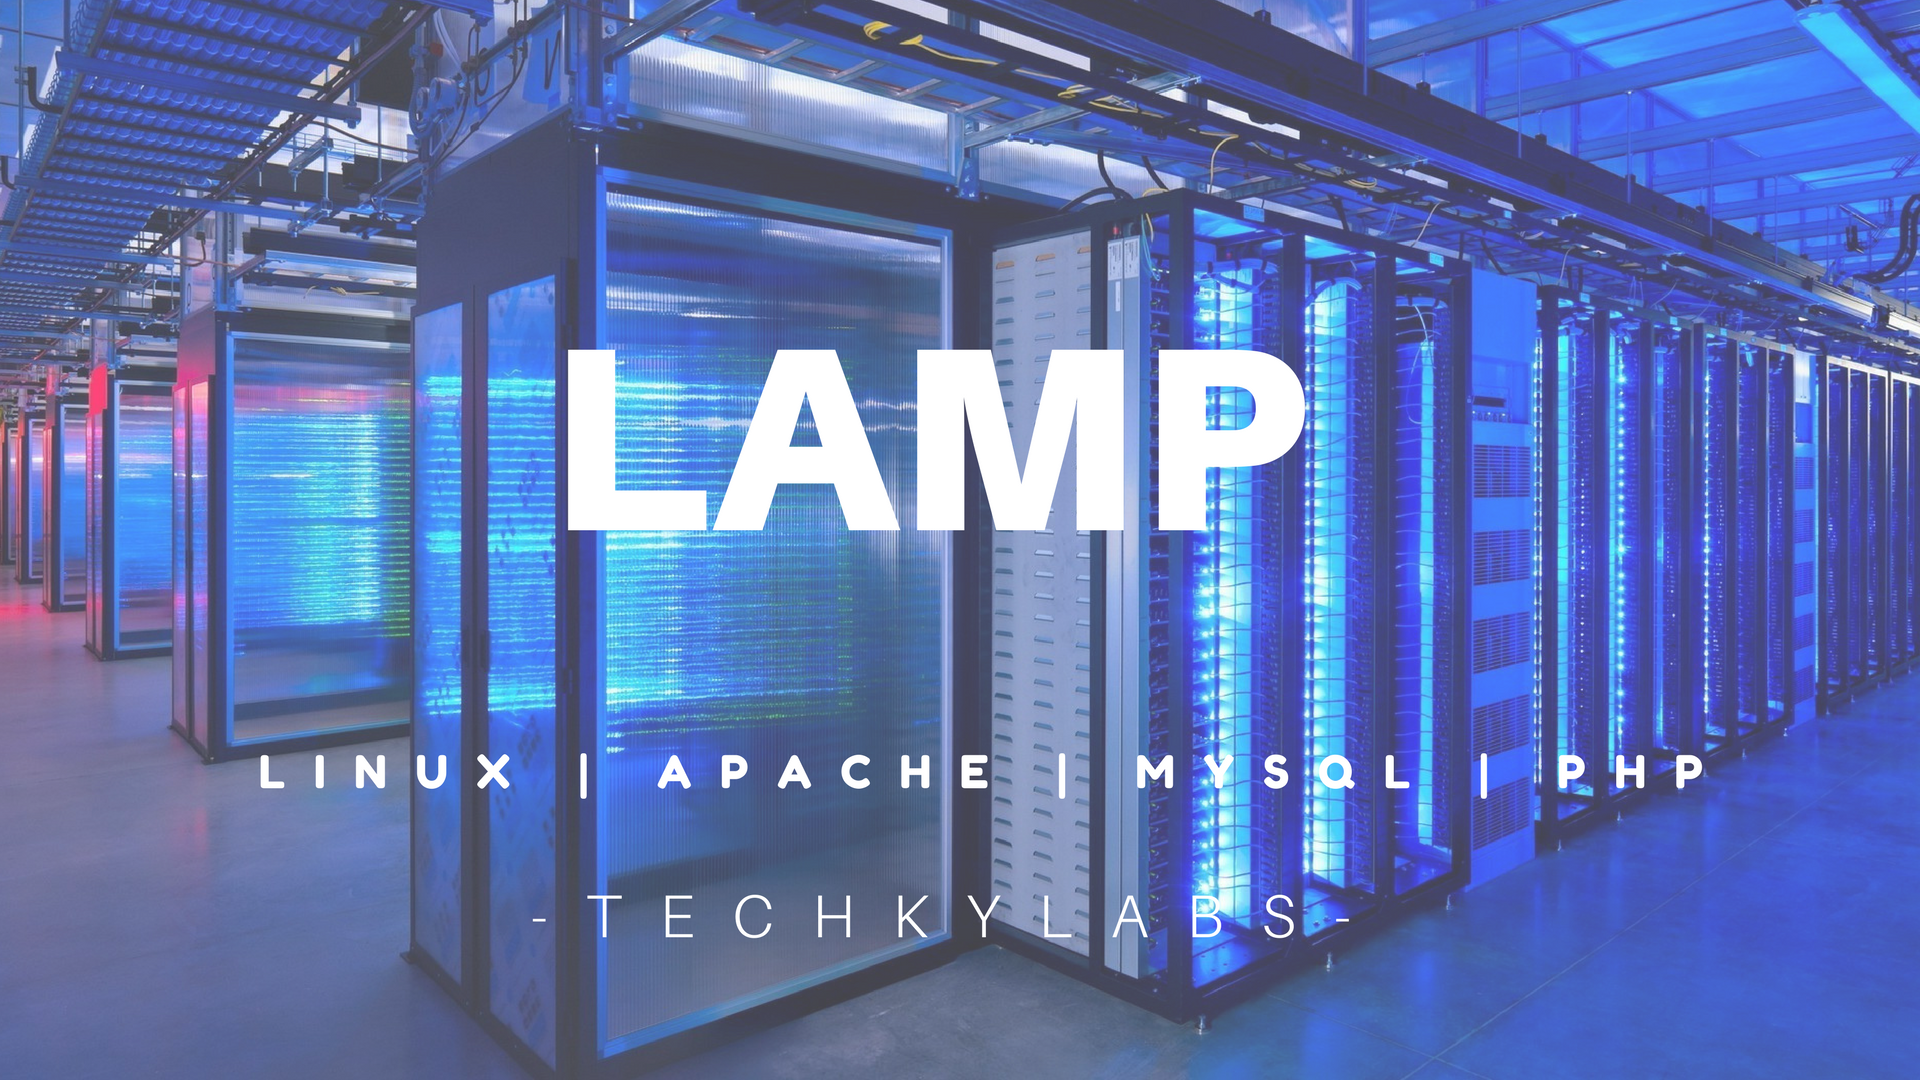 How To Setup Linux Apache Mysql Php Lamp Stack On Ubuntu 16 04 By Abhay Chauhan Techkylabs Medium